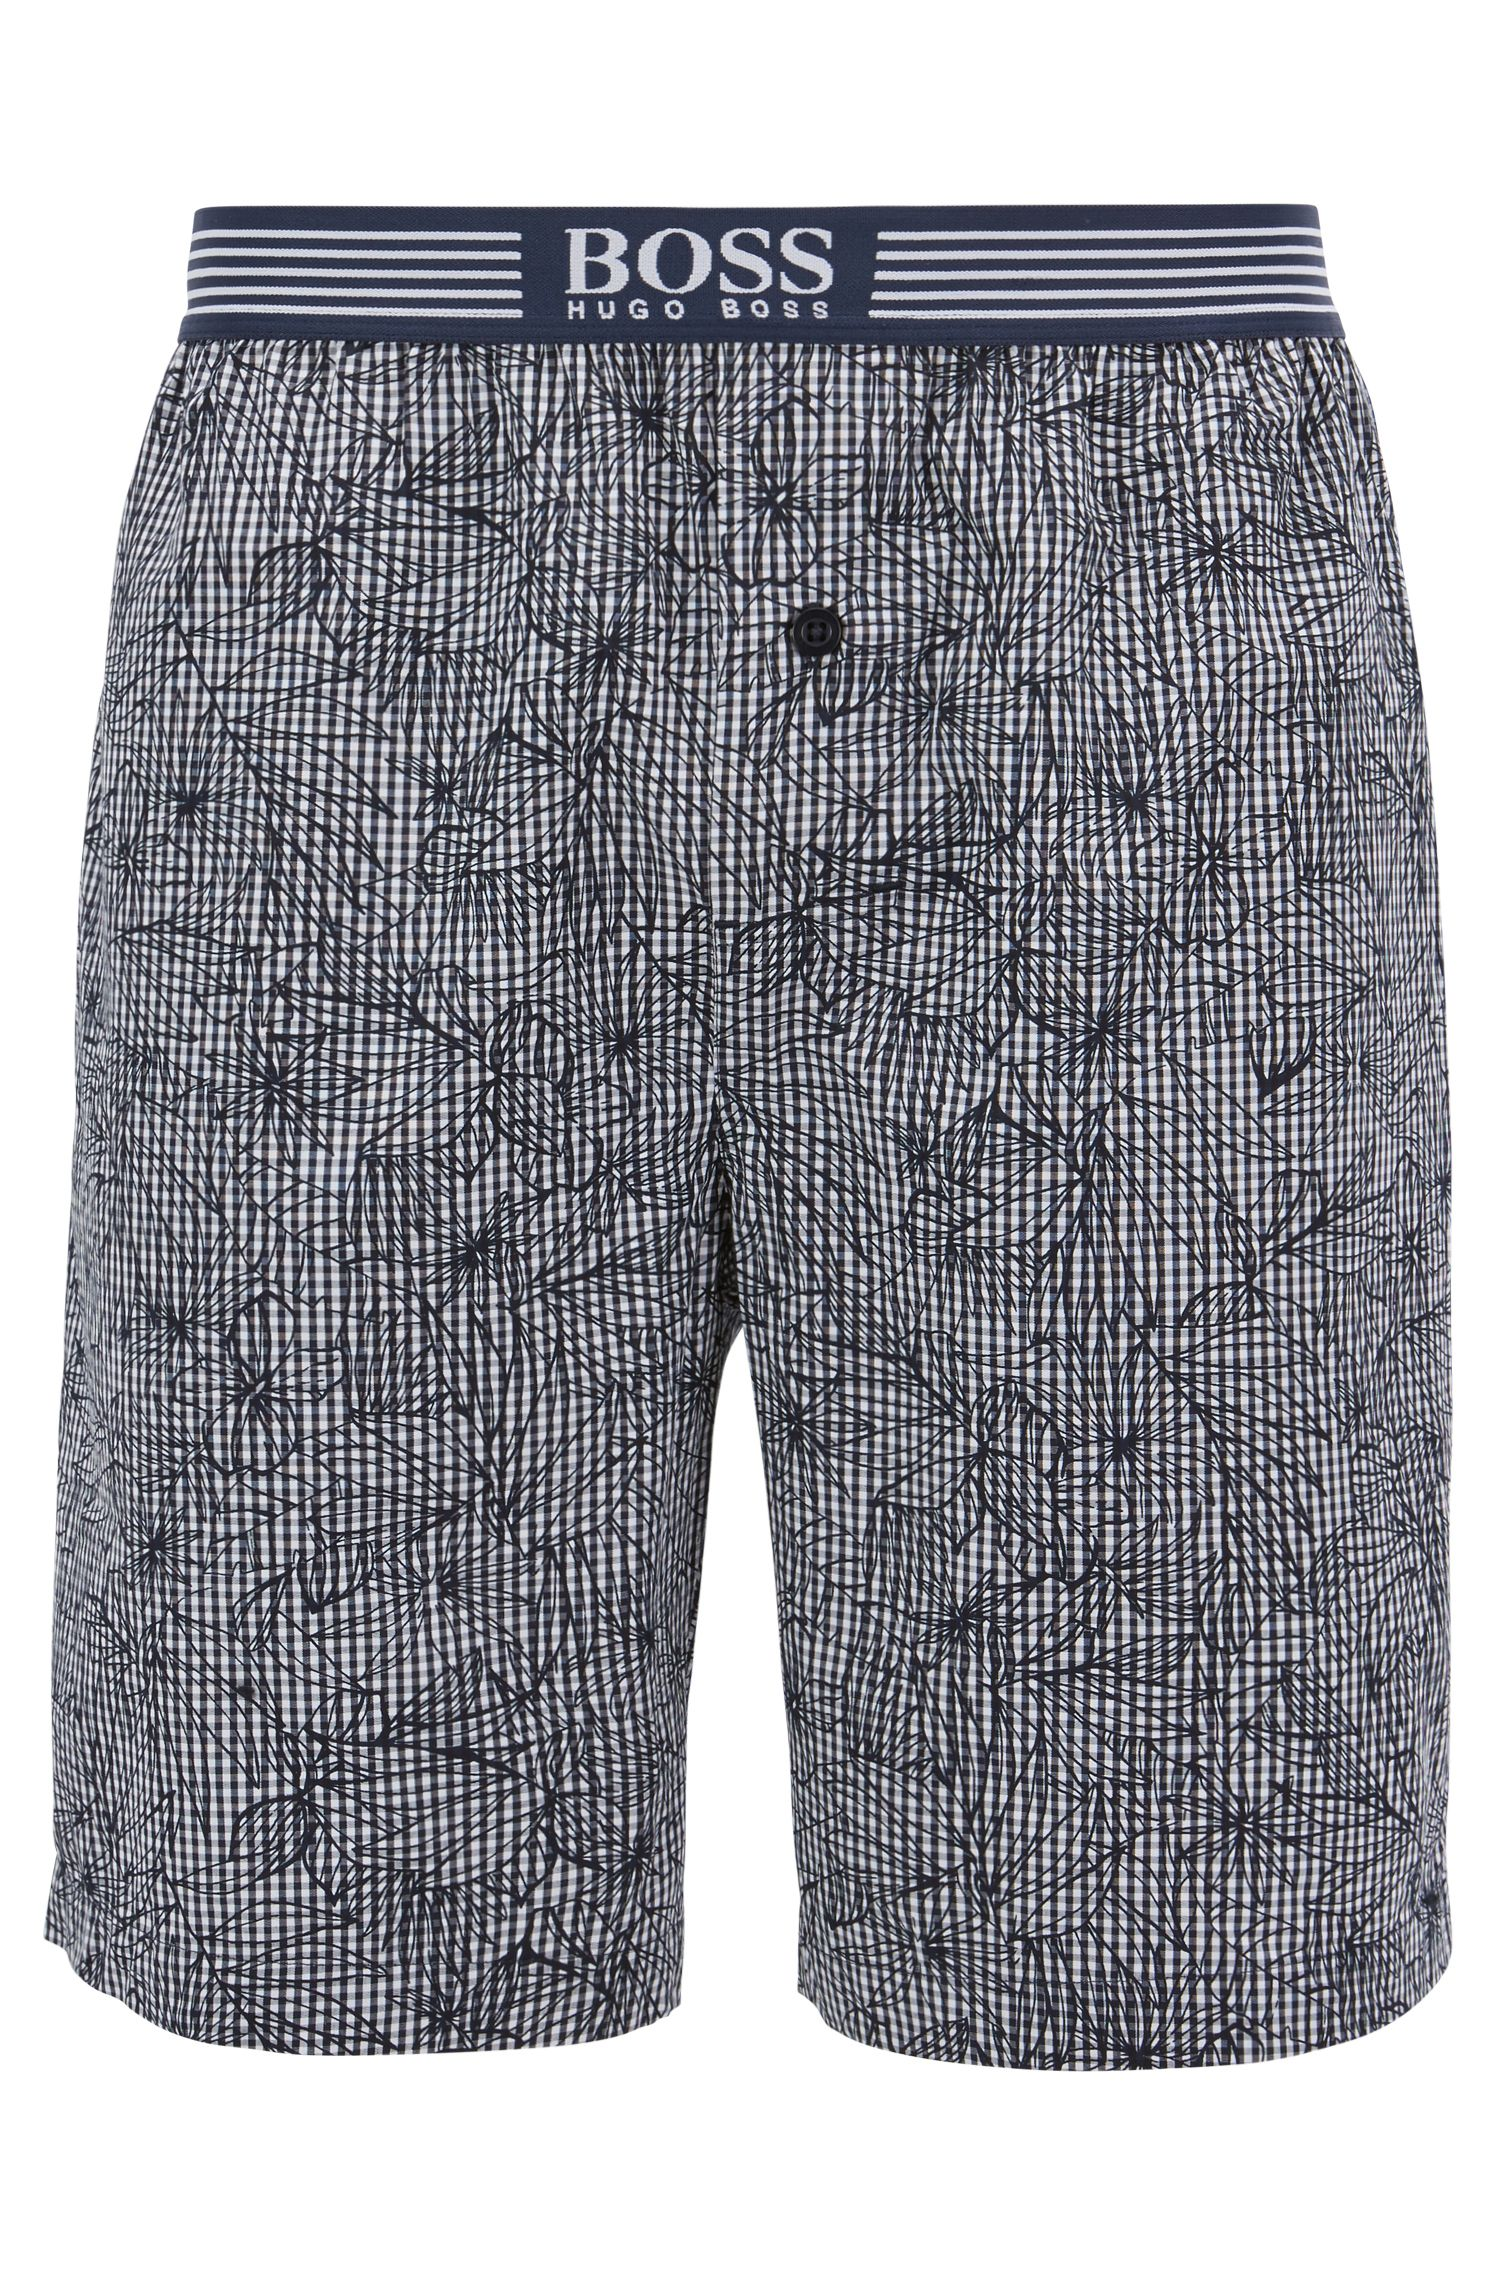 Vichy-check pyjama shorts with floral overprint, Dark Blue